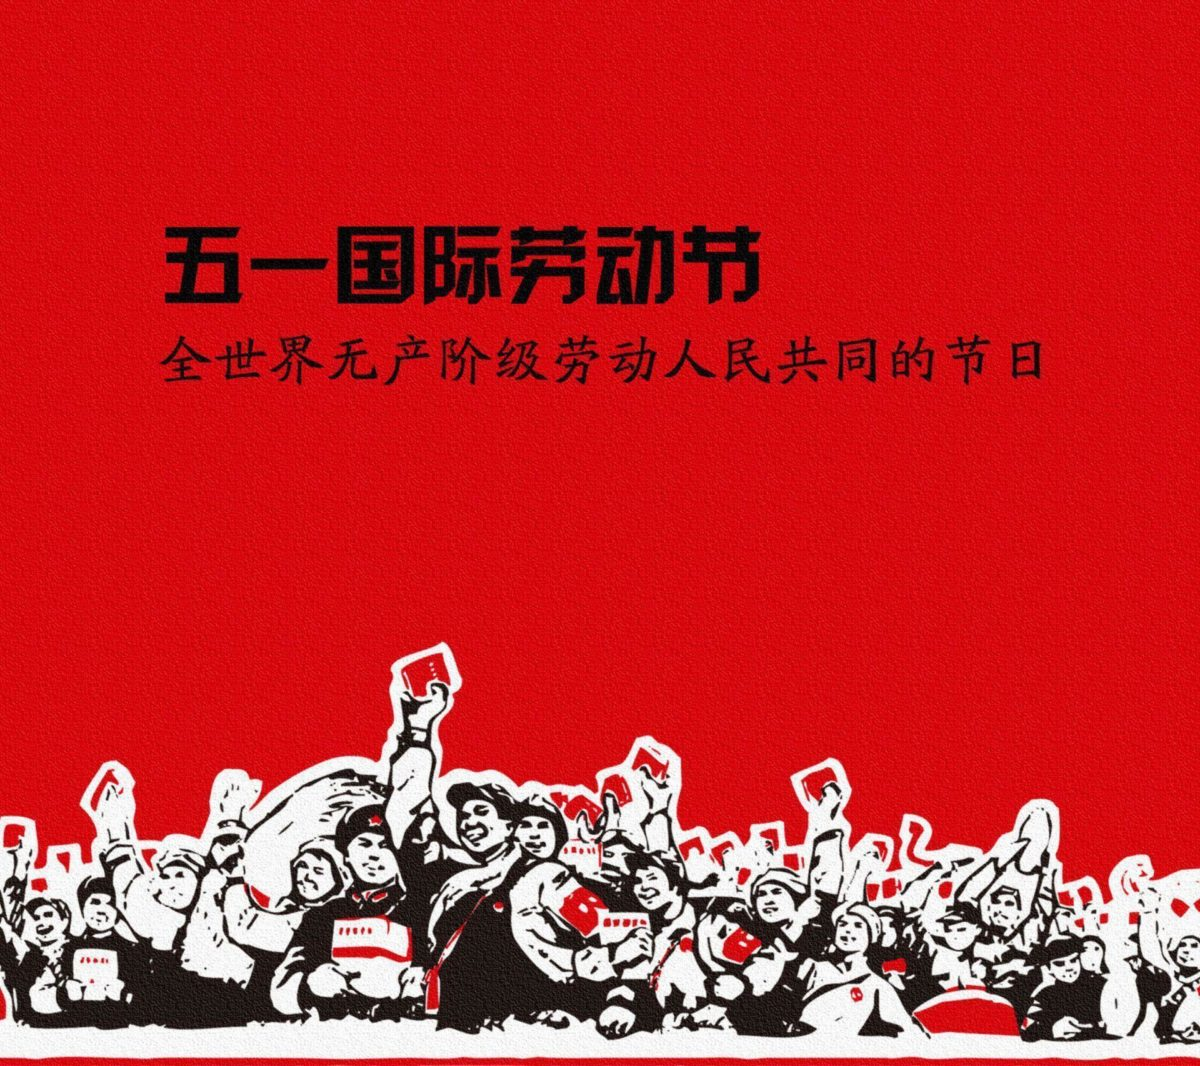 Labor day in china wide screen modern wallpaper 292014110829 …